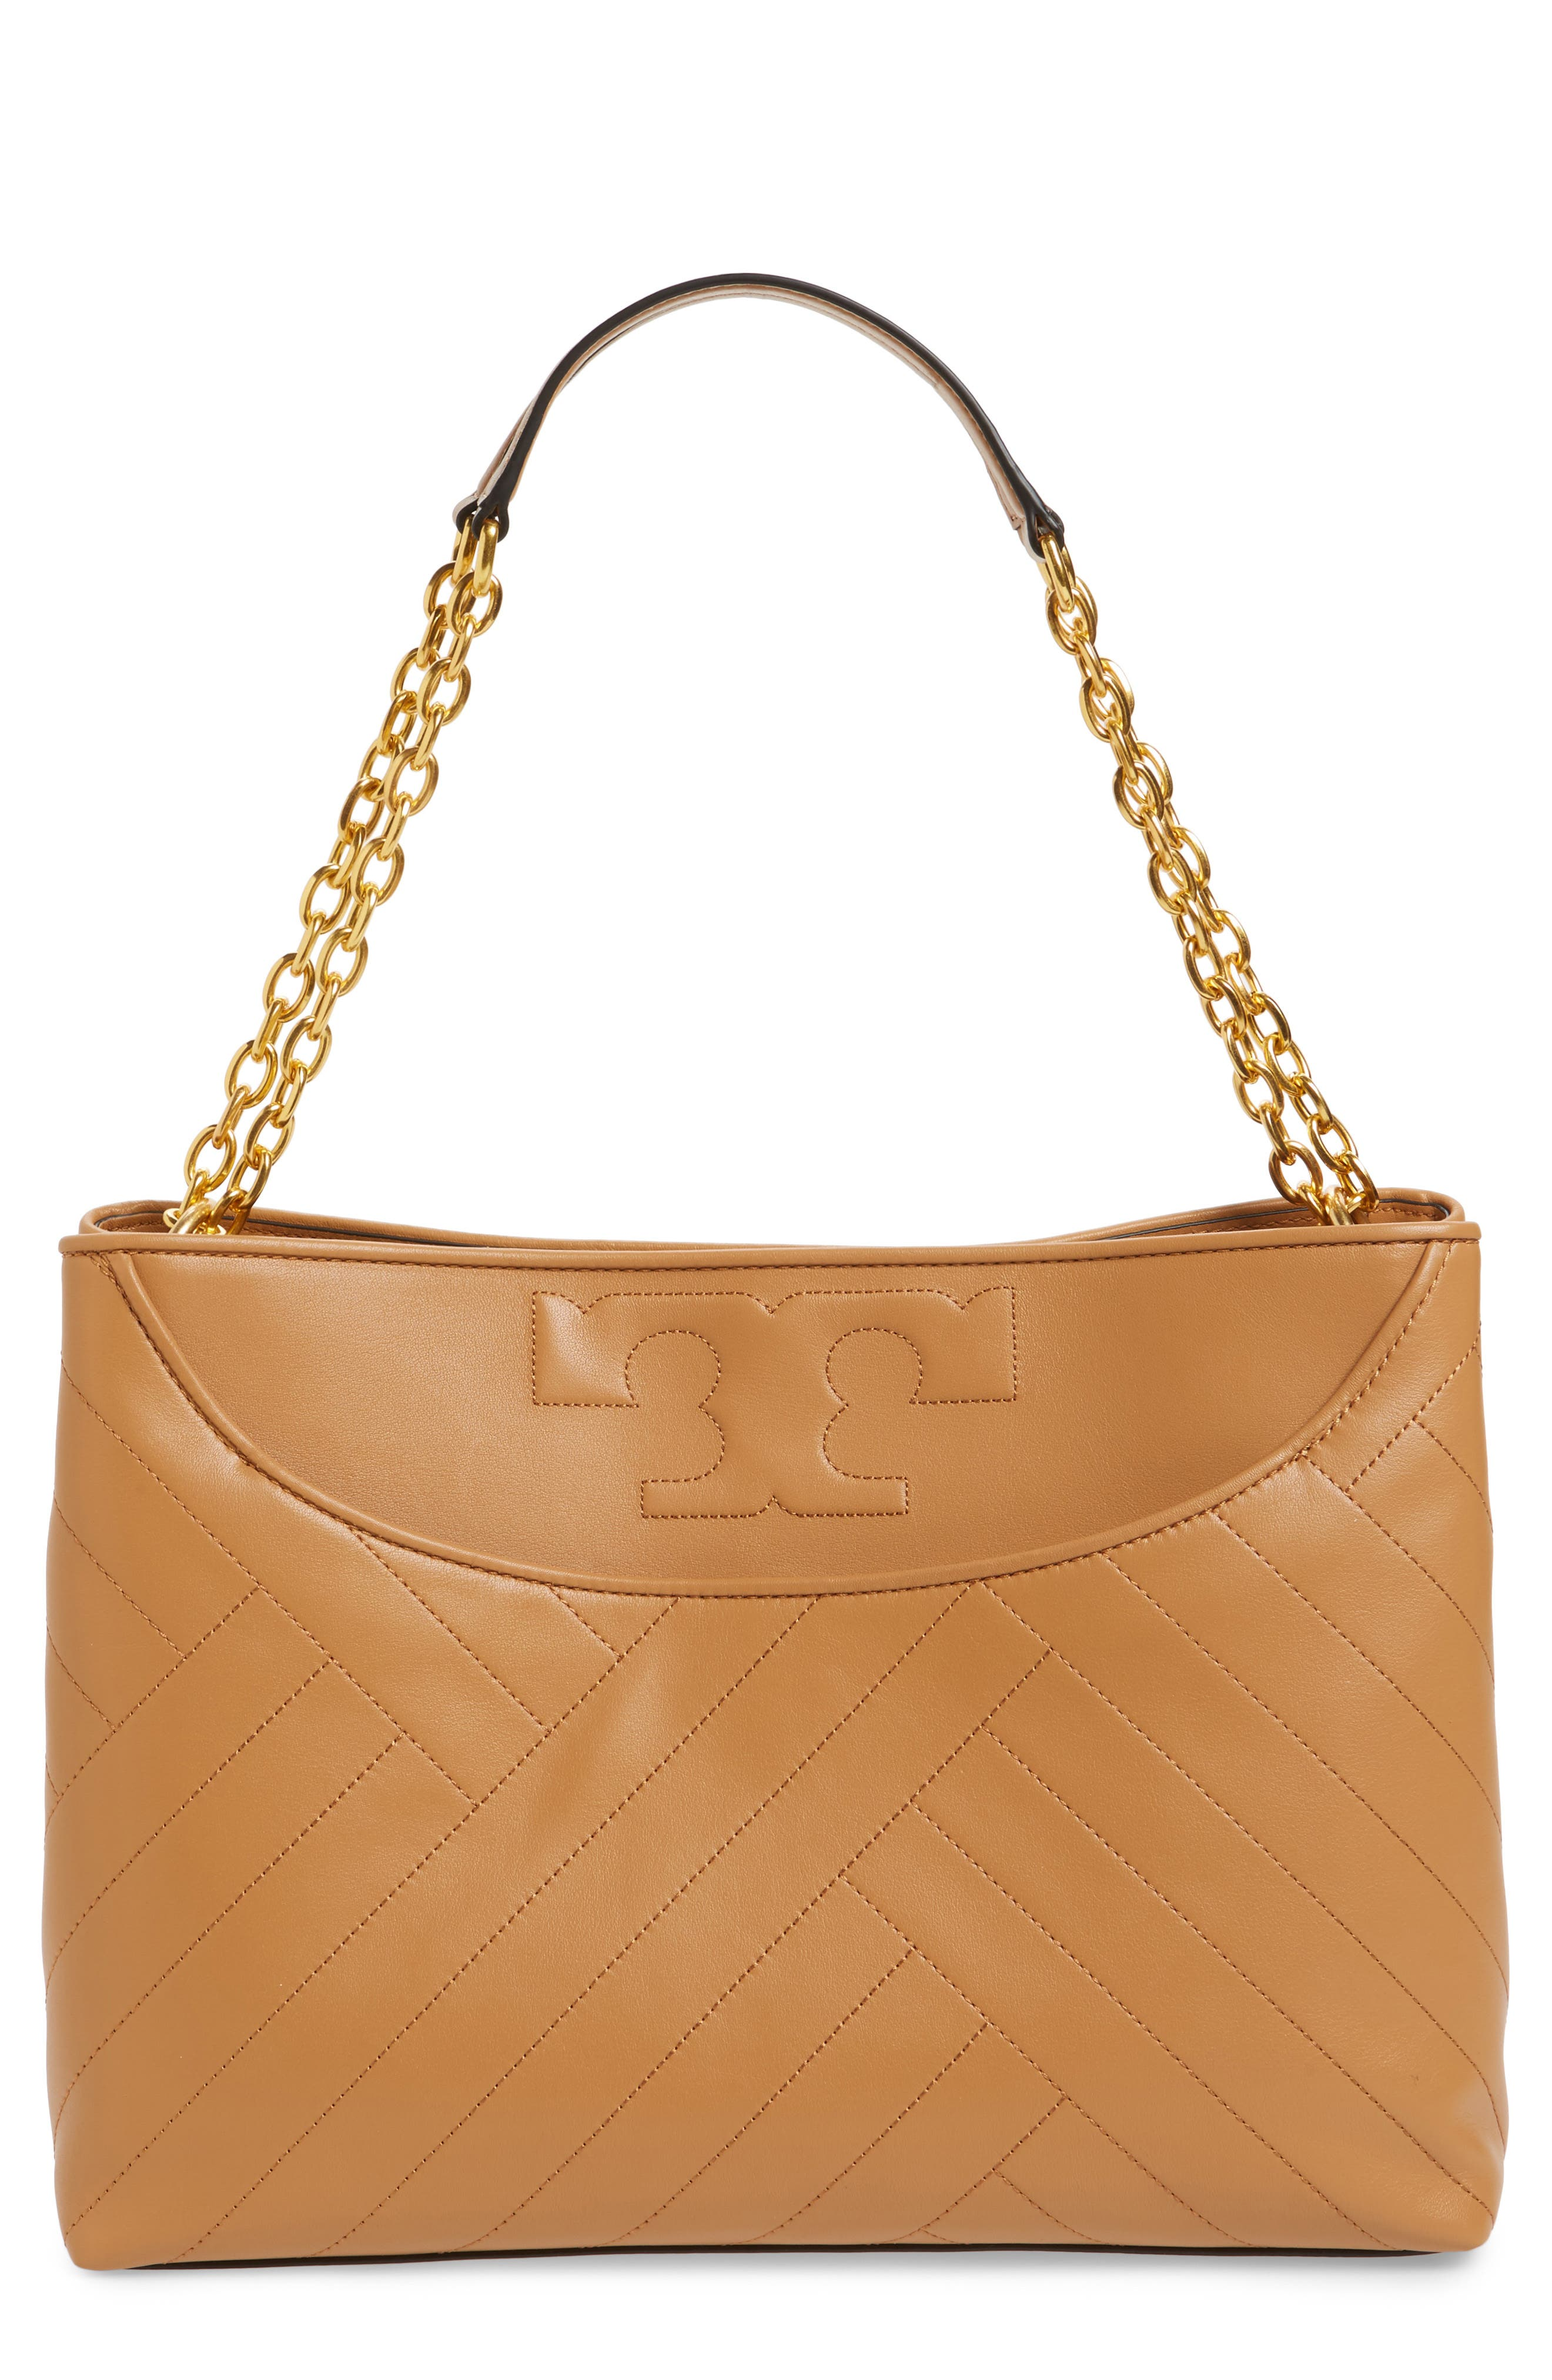 TORY BURCH,                             Alexa Leather Tote,                             Main thumbnail 1, color,                             200